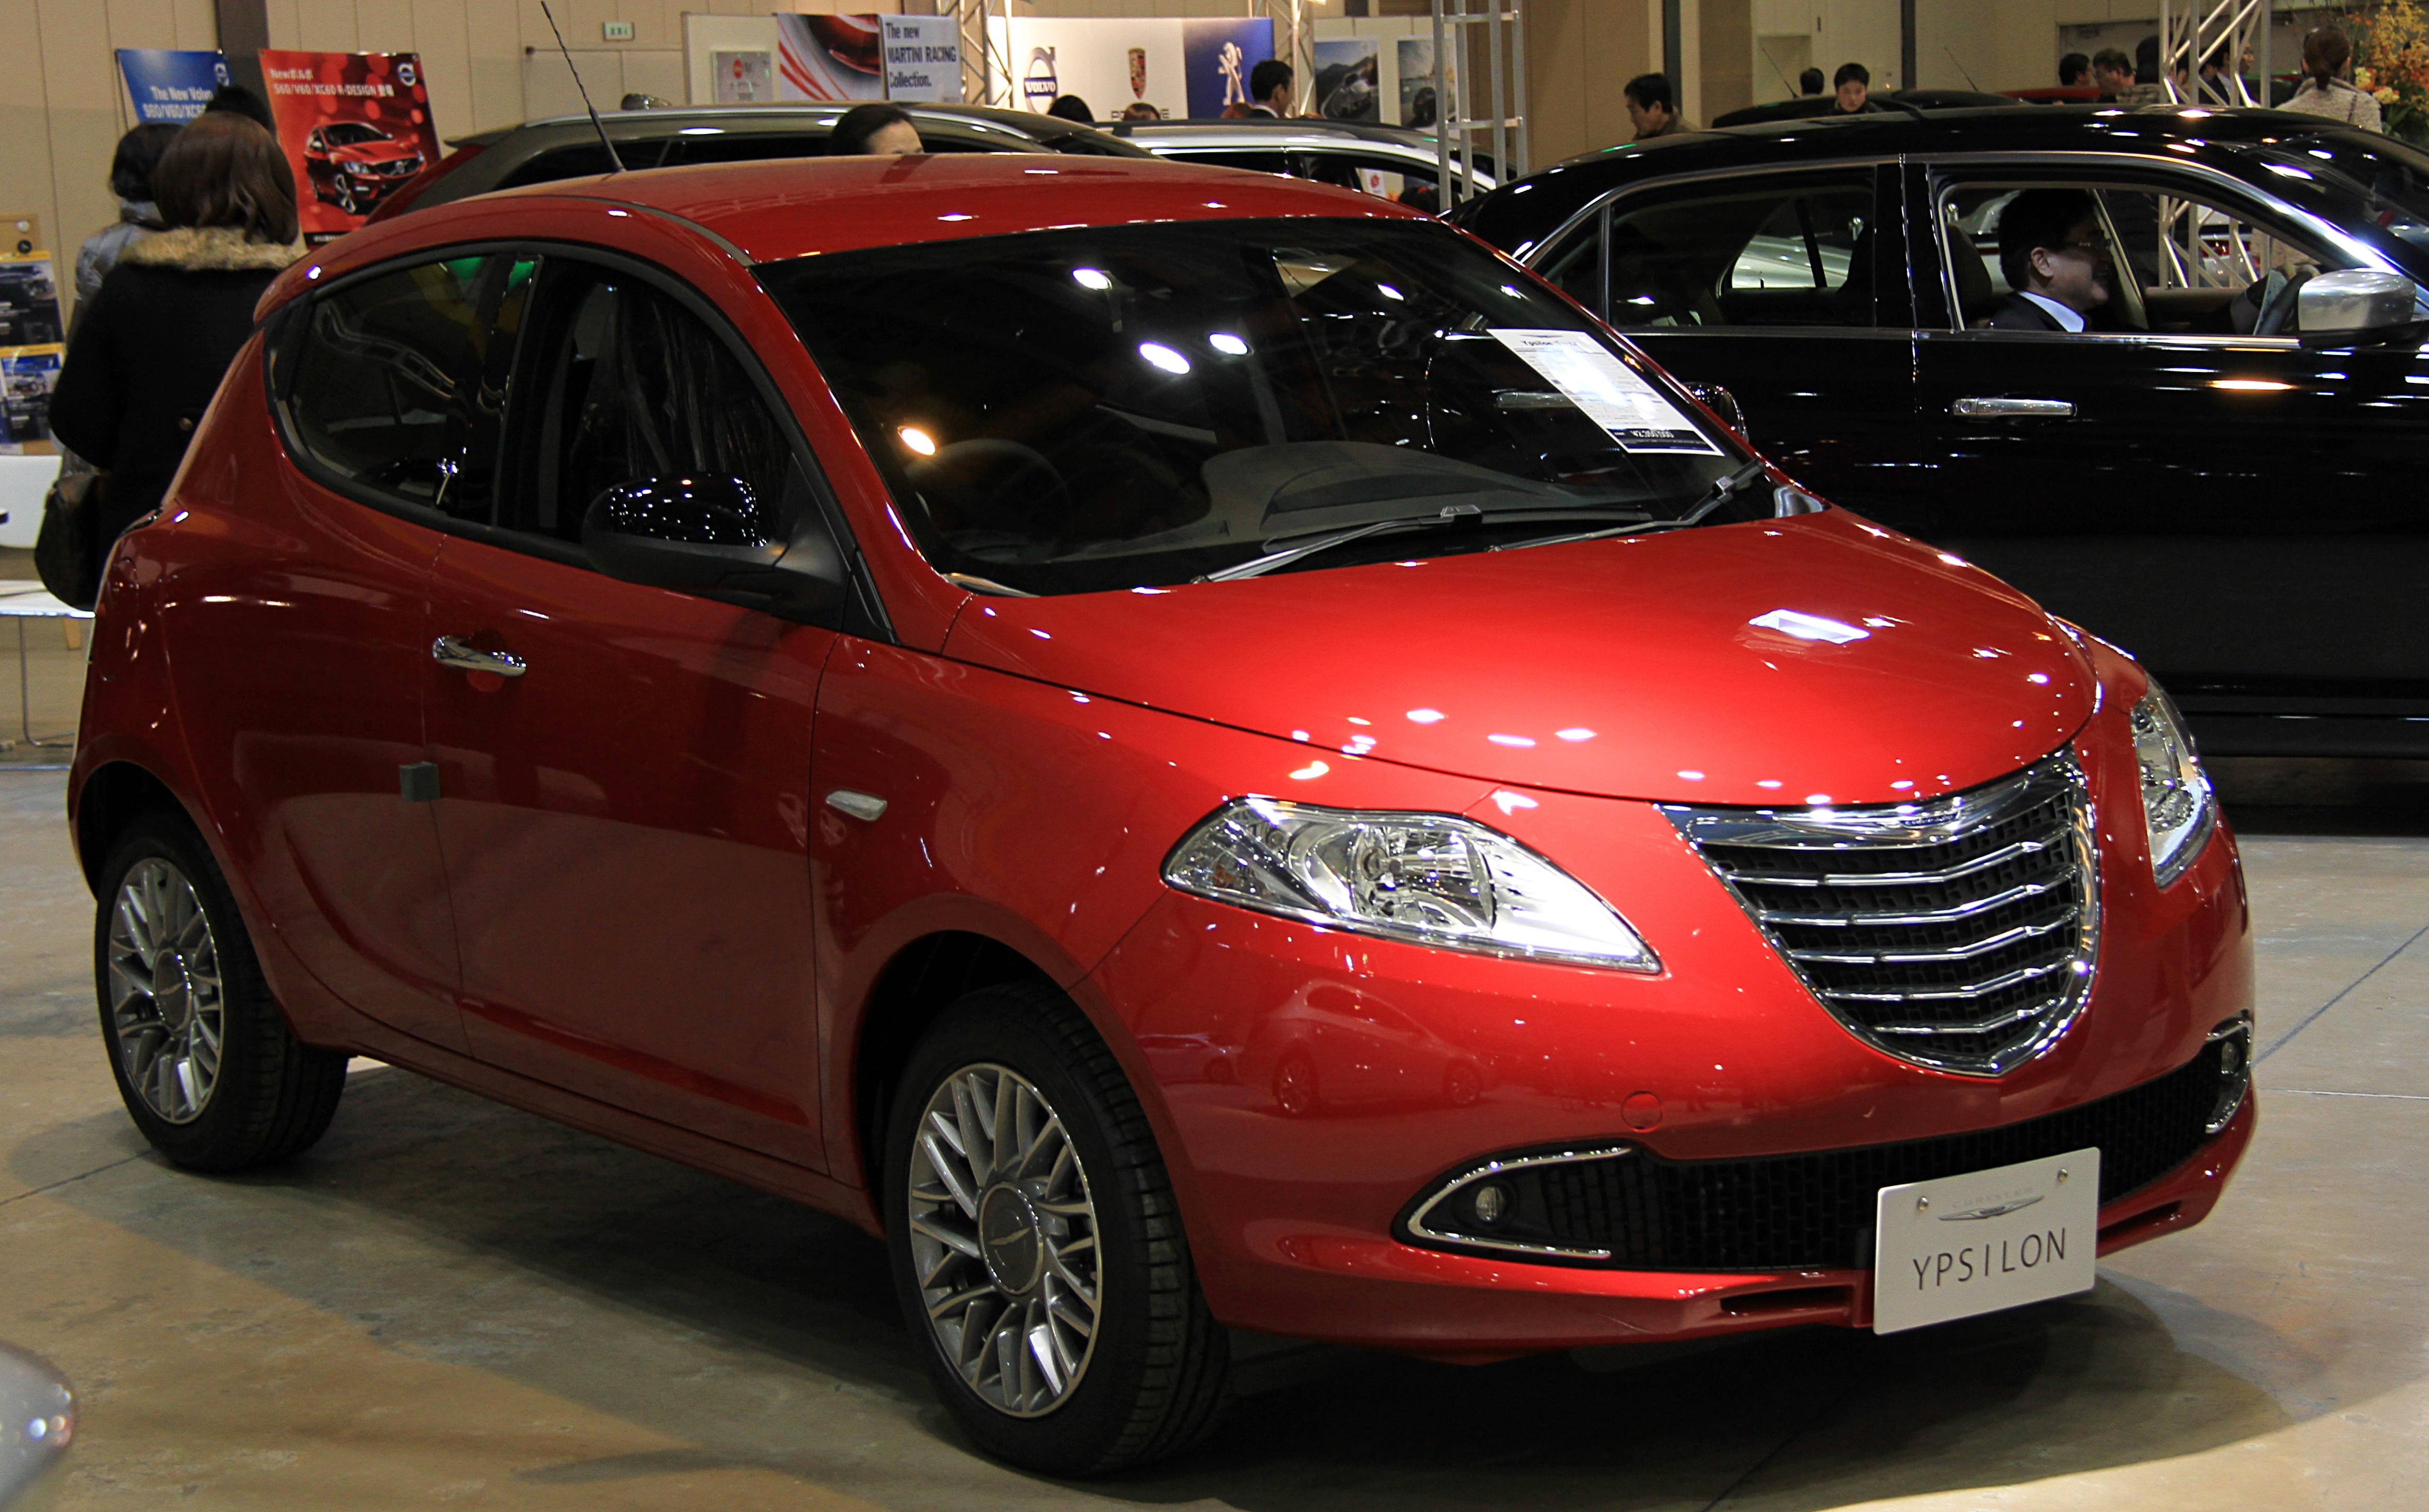 Chrysler Ypsilon #7